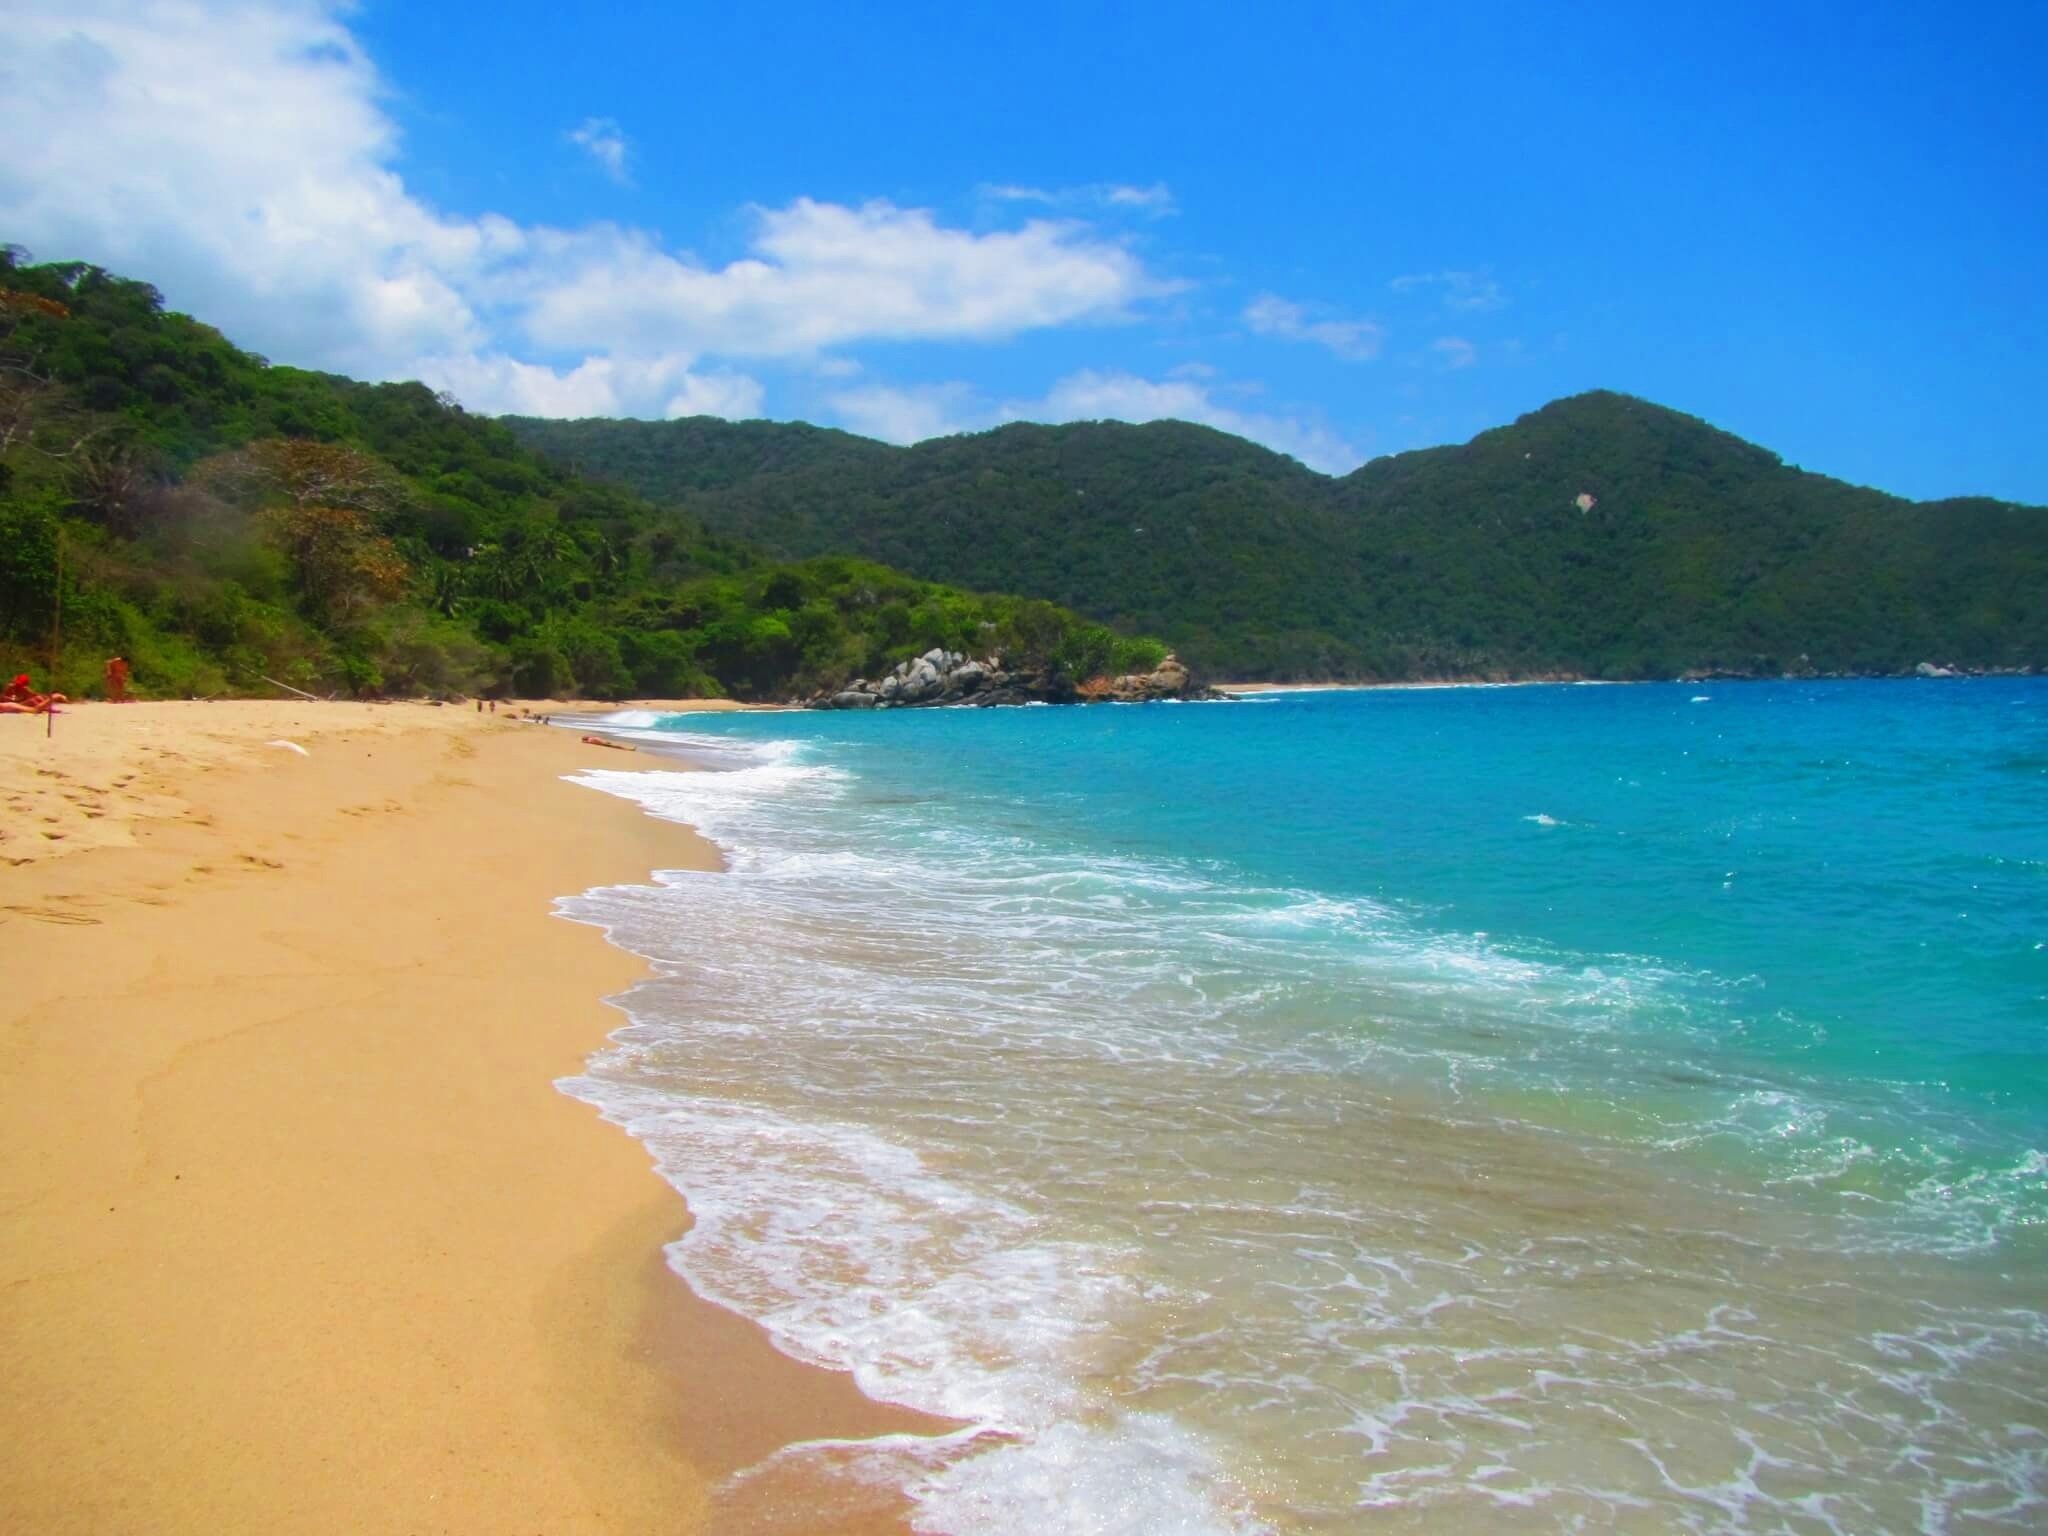 The picturesque beaches of Tayrona National Park. This is the alleged nudist part of the beach.